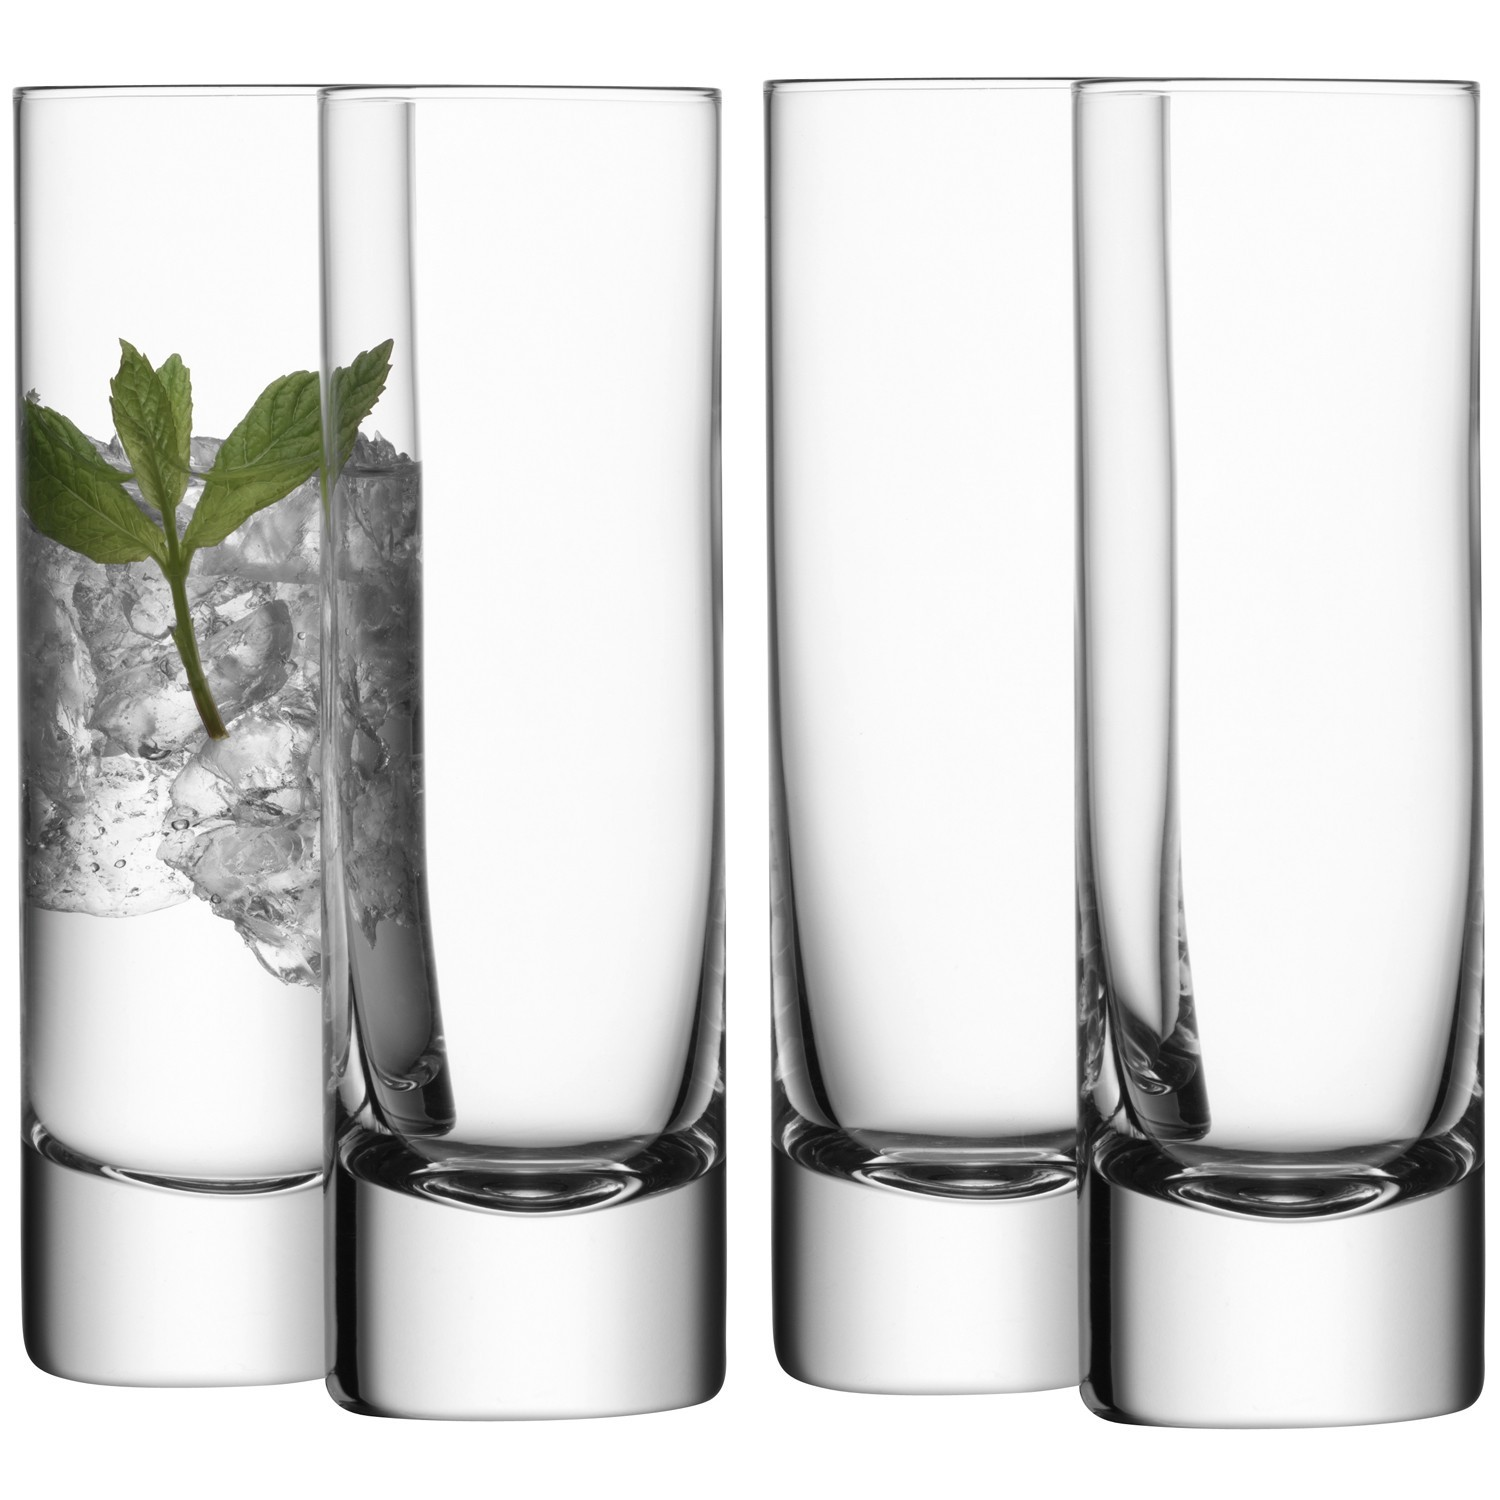 the best long drink glass by lsa. Black Bedroom Furniture Sets. Home Design Ideas